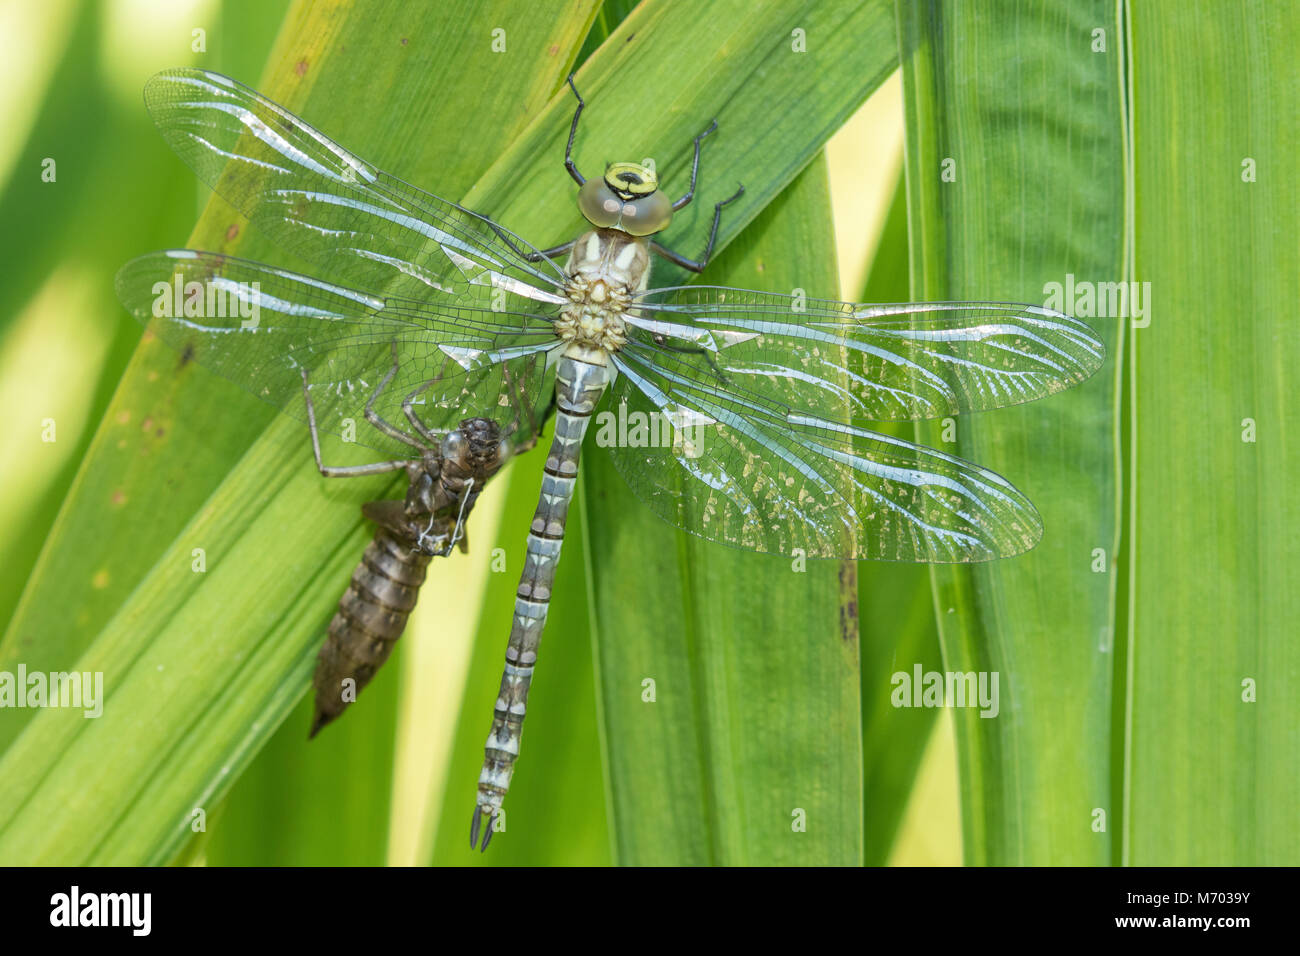 A recently hatched dragonfly next to the shell of the nymph in a garden, Milborne Port, Somerset, England, UK - Stock Image